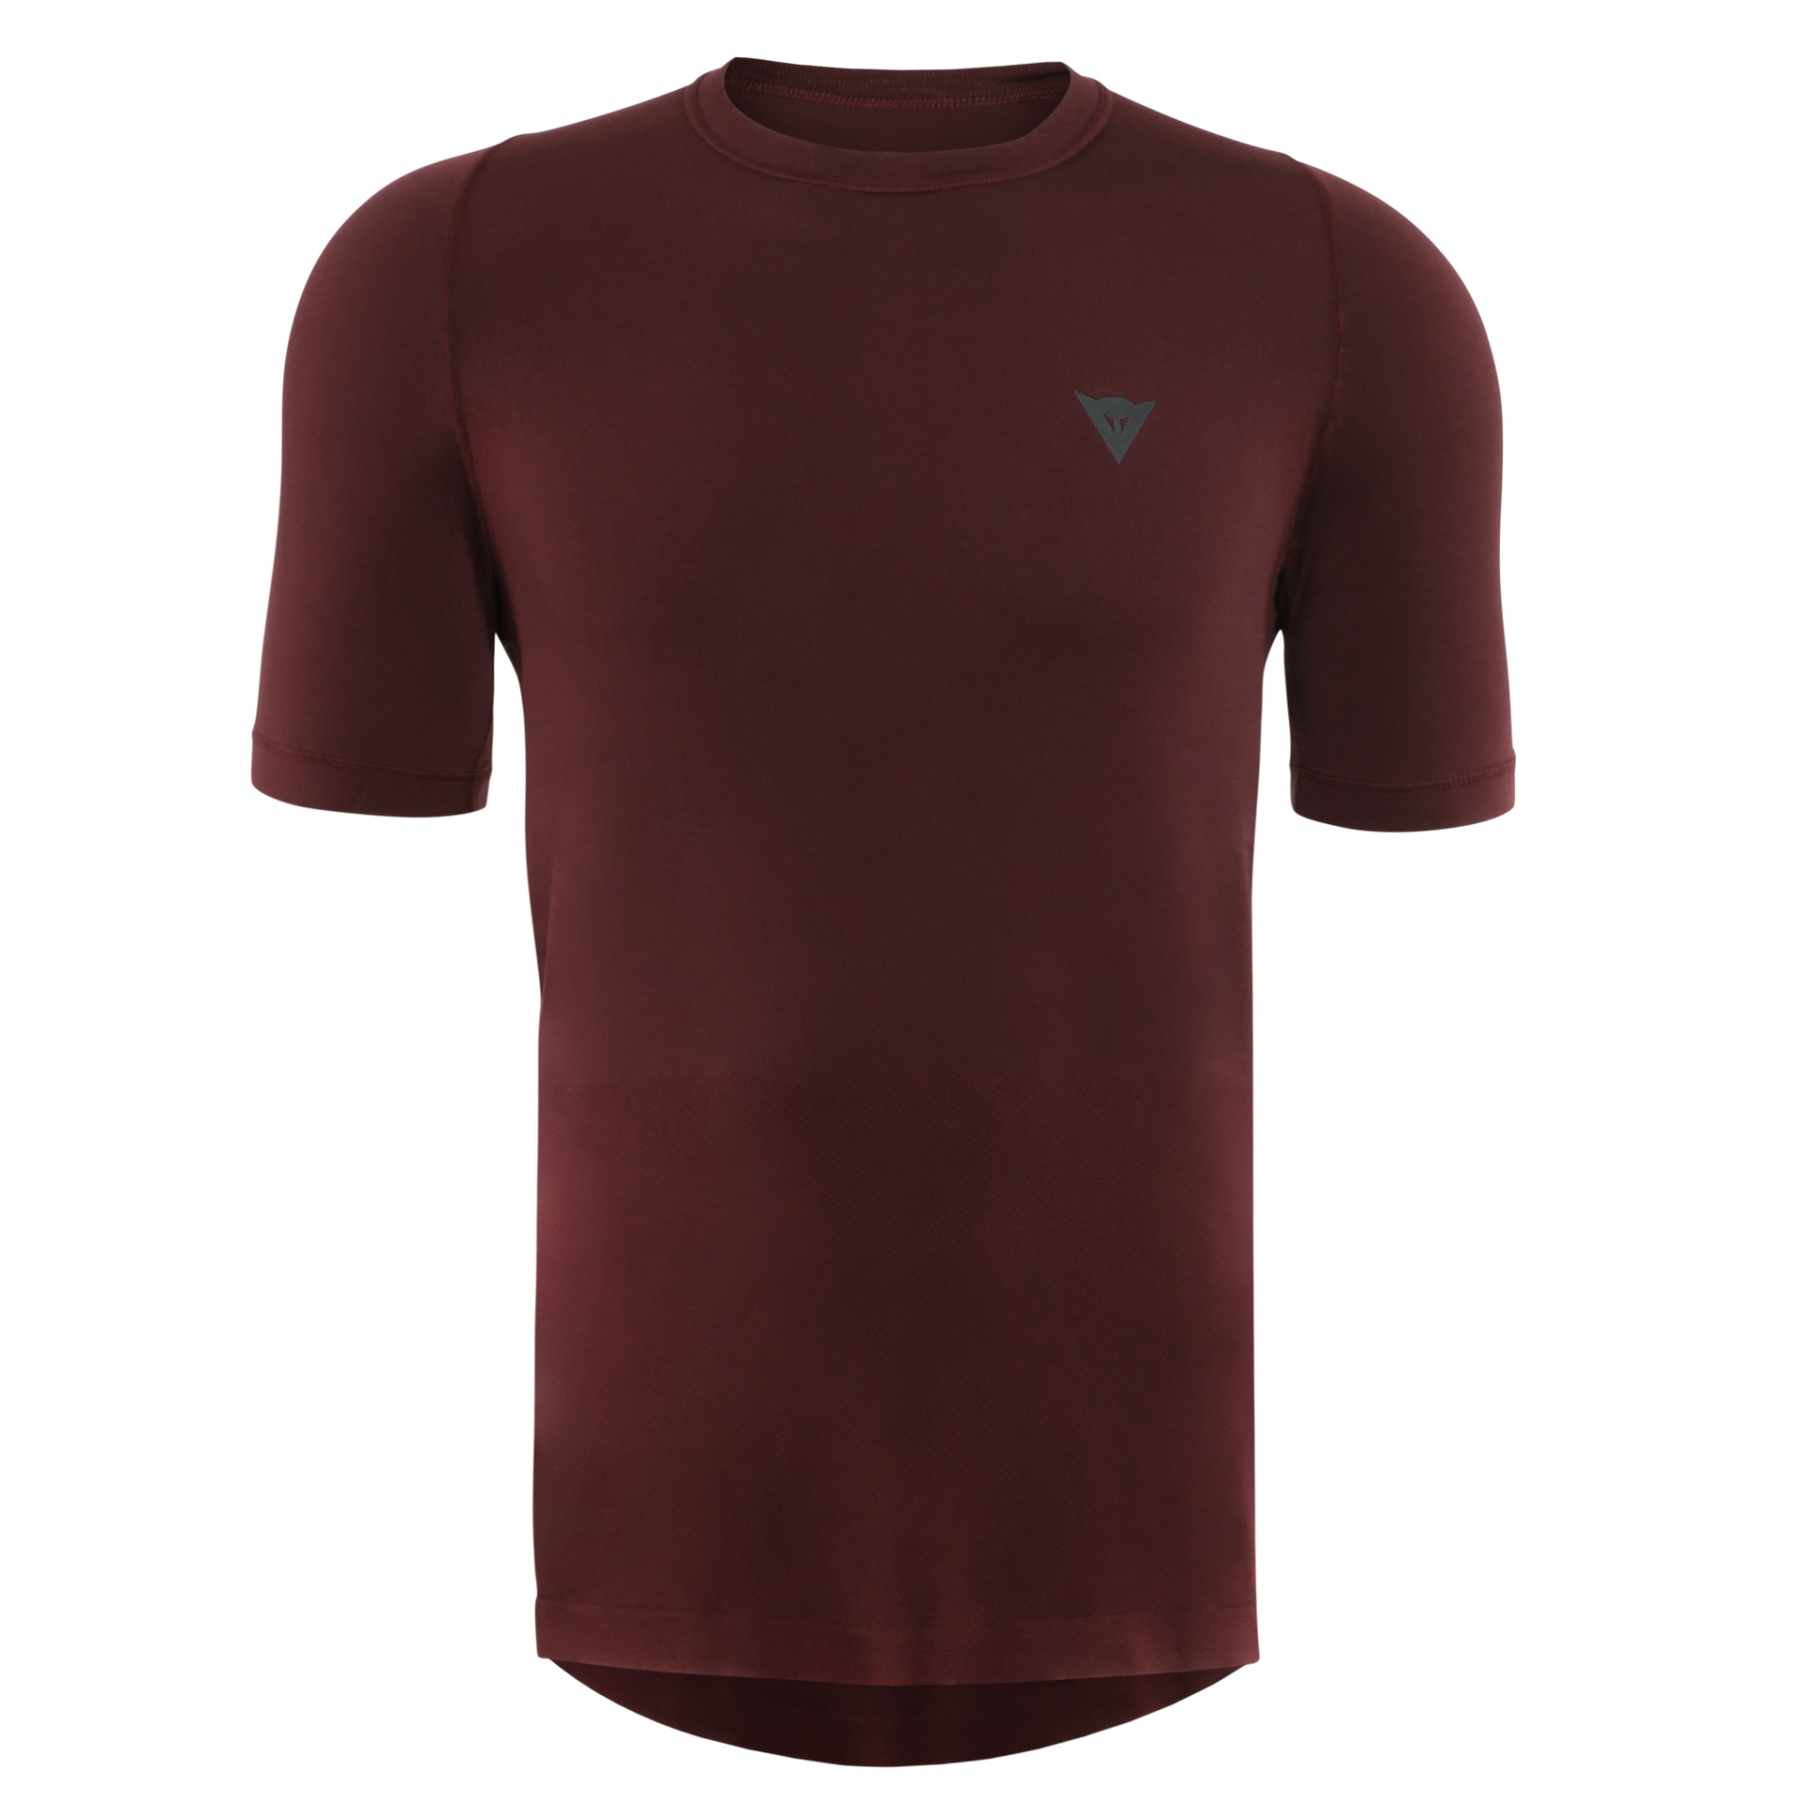 Picture of Dainese HGL Baciu MTB Shortsleeve Jersey - bordeaux